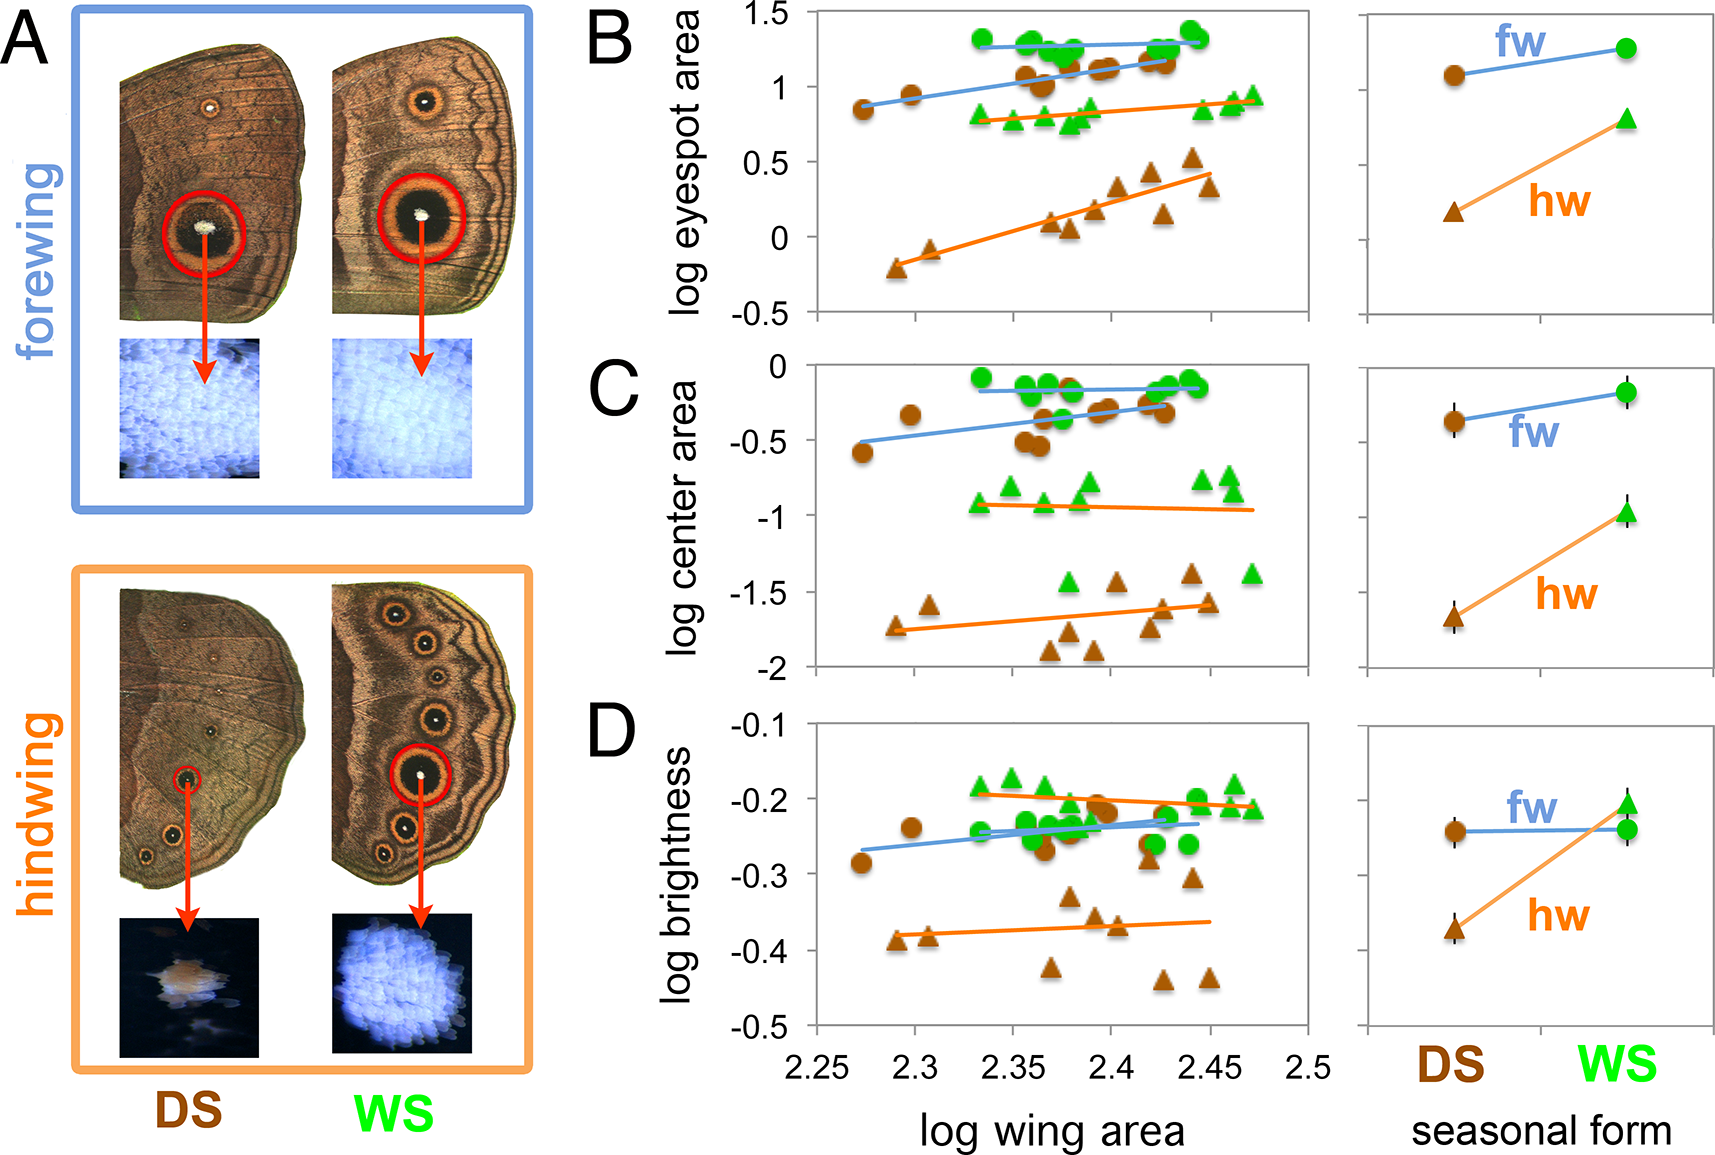 Forewing eyespots display lower levels of plasticity relative to hindwing eyespots.